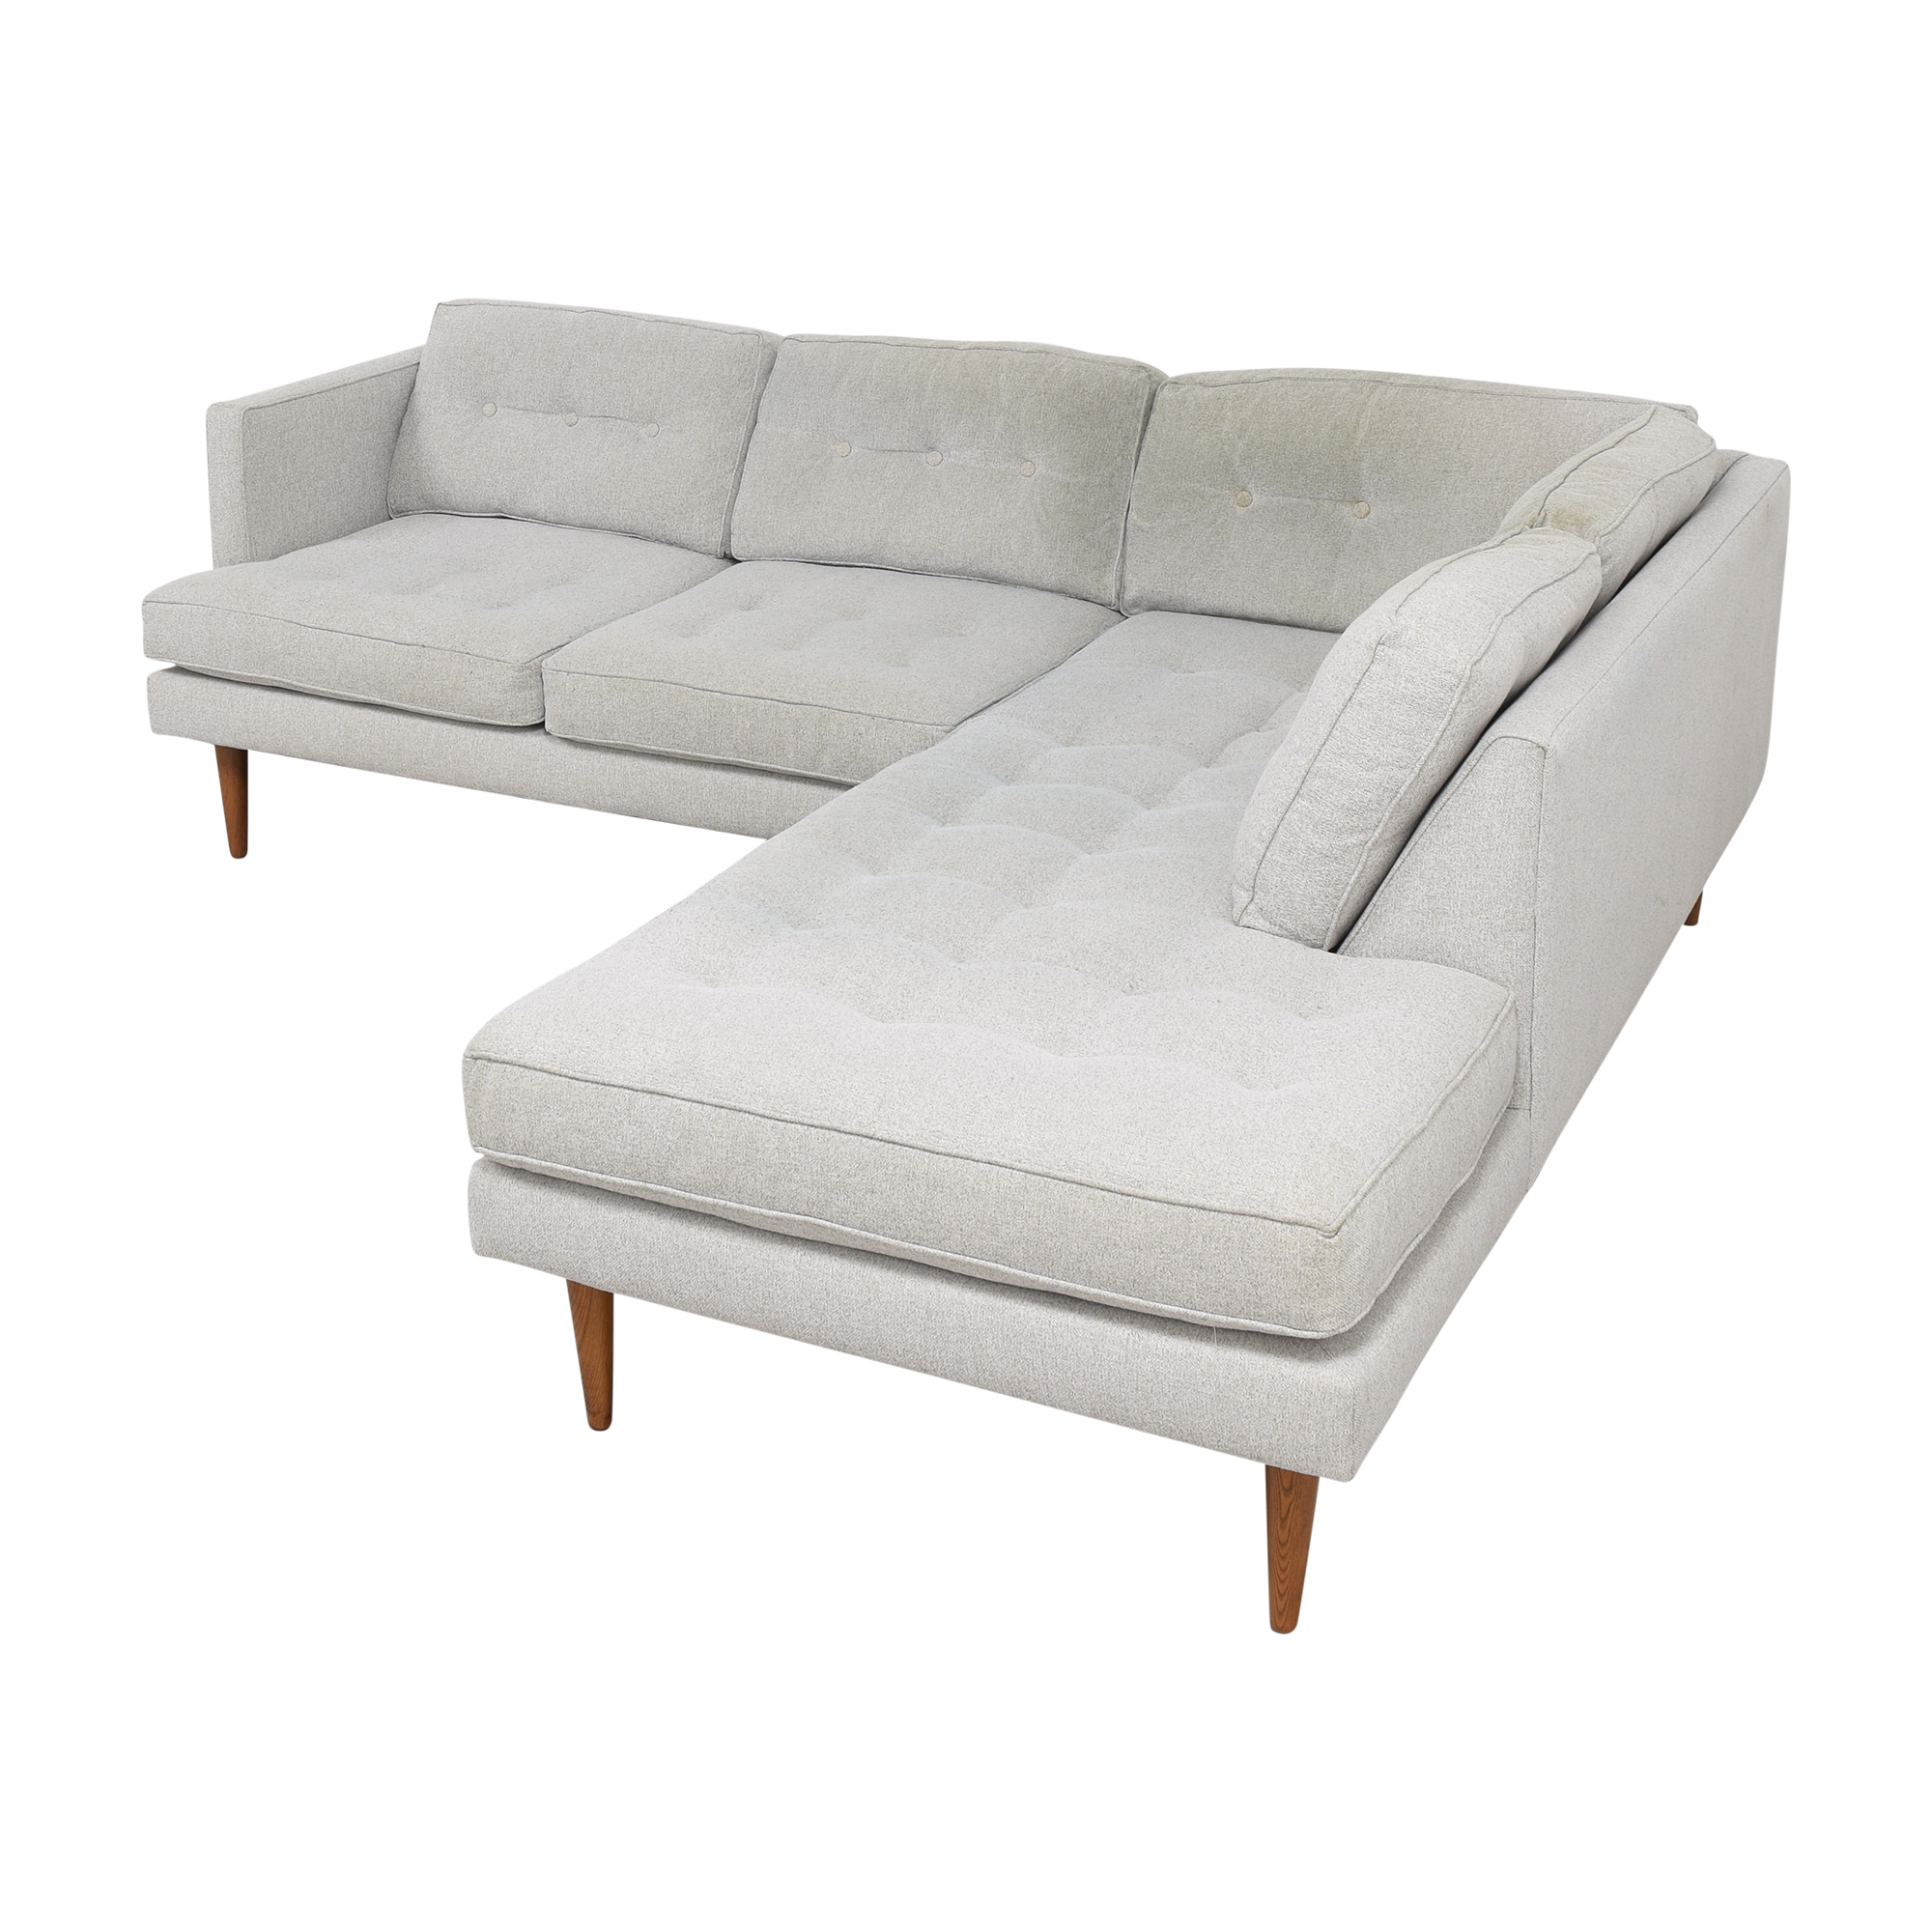 West Elm Terminal Chaise Sectional Sofa / Sofas